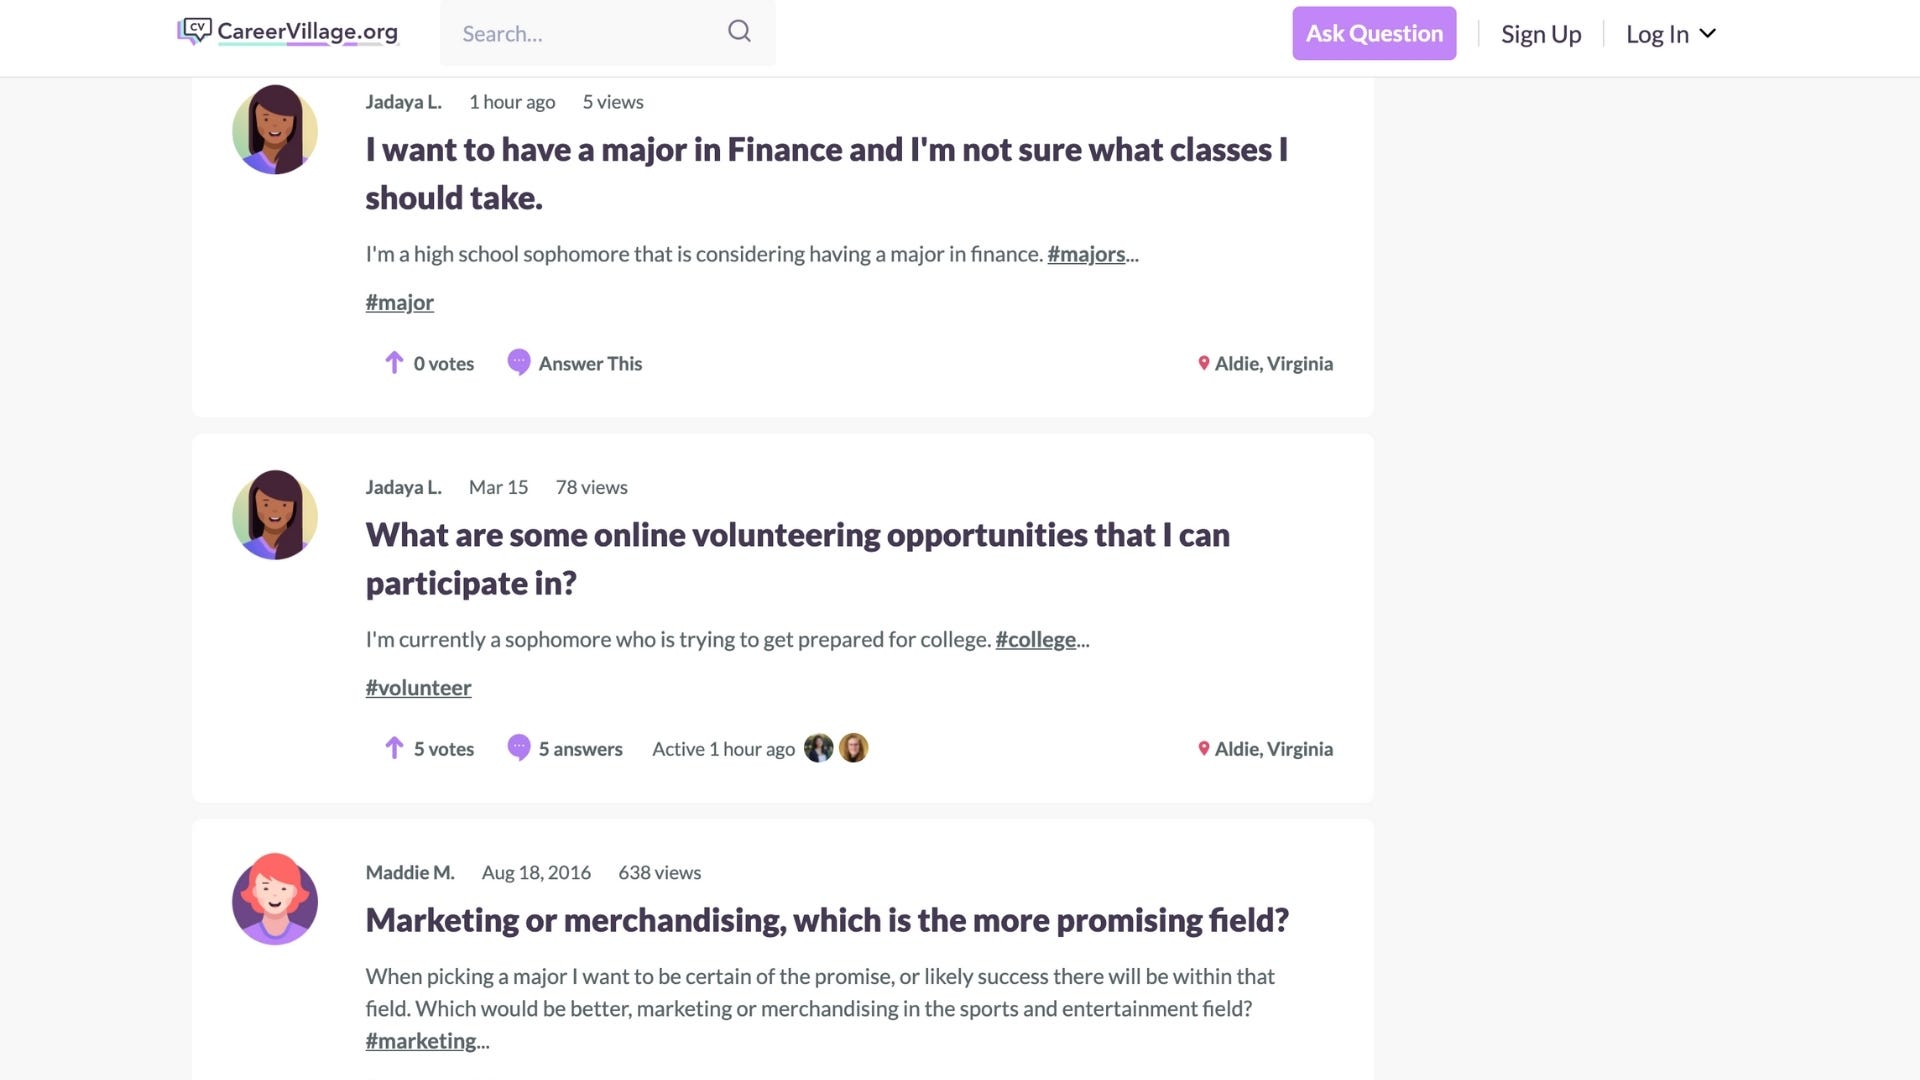 Questions on the CareerVillage forum.